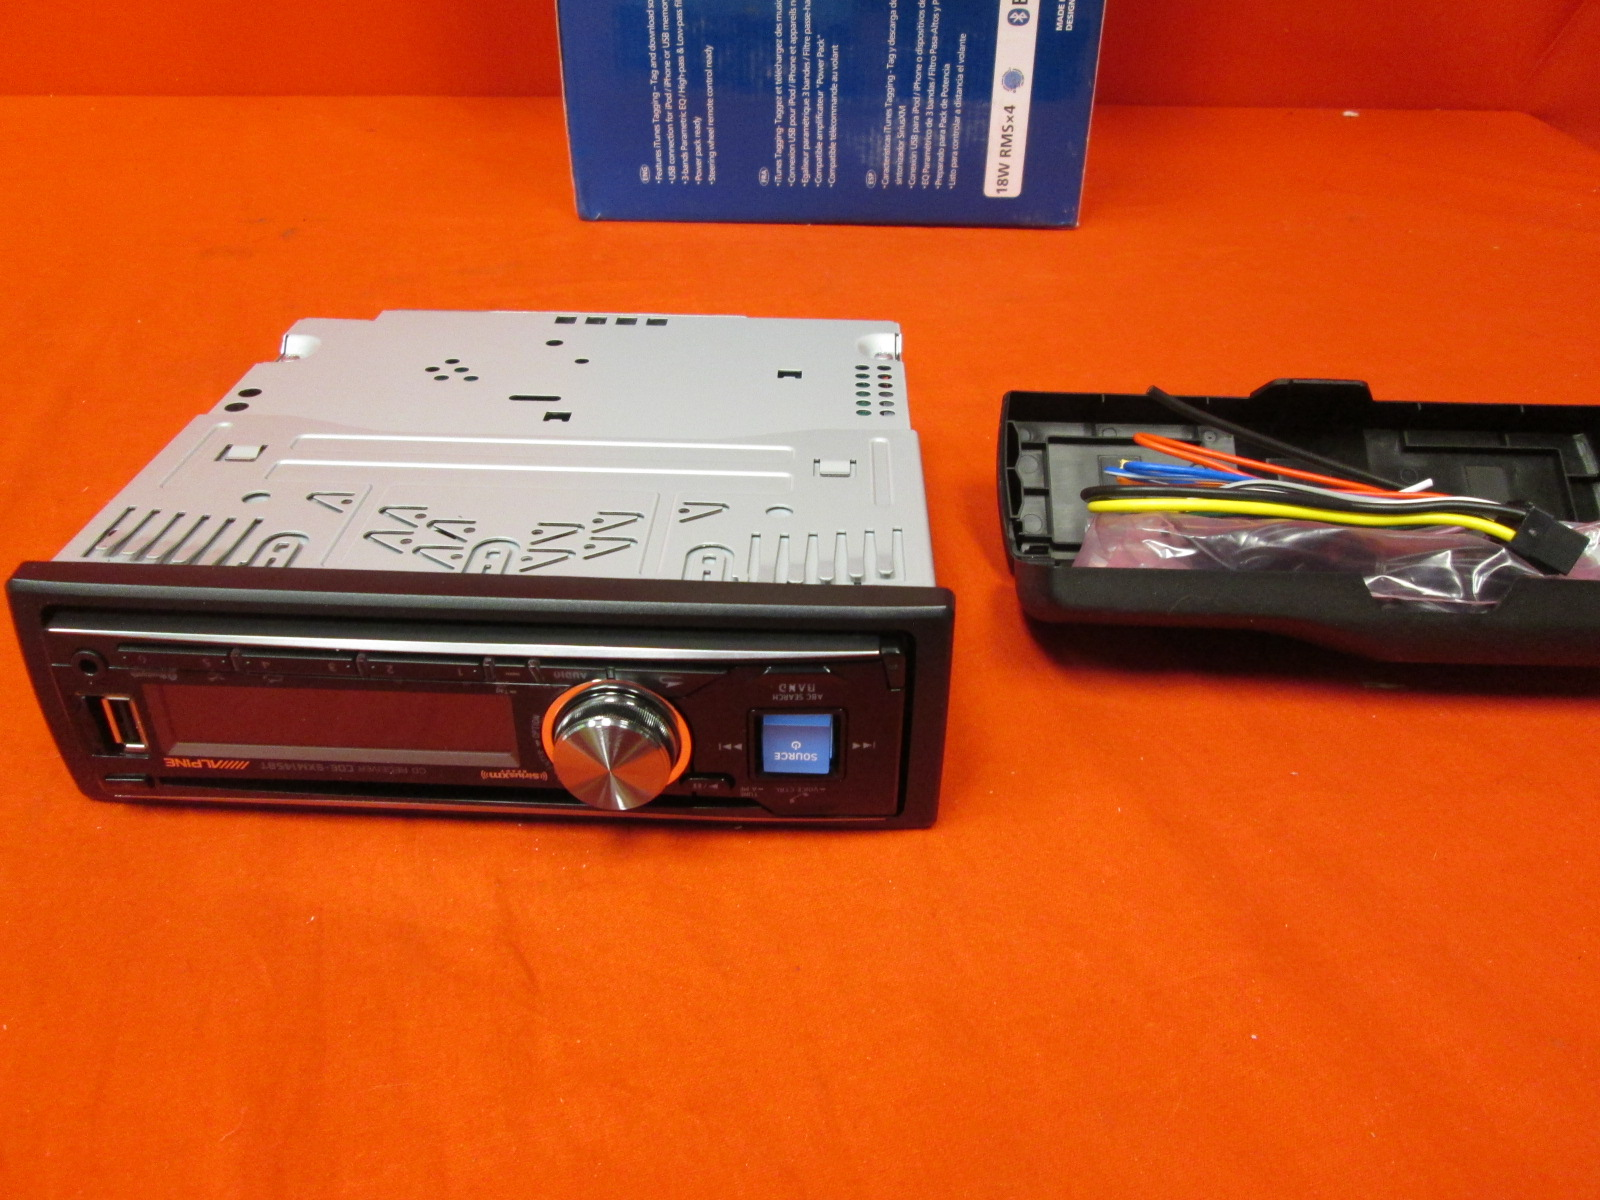 hight resolution of alpine cde 143bt manual pdf download head units manage performance functionality of car audio system great extent am r en mp3 wma aac cd bluetooth